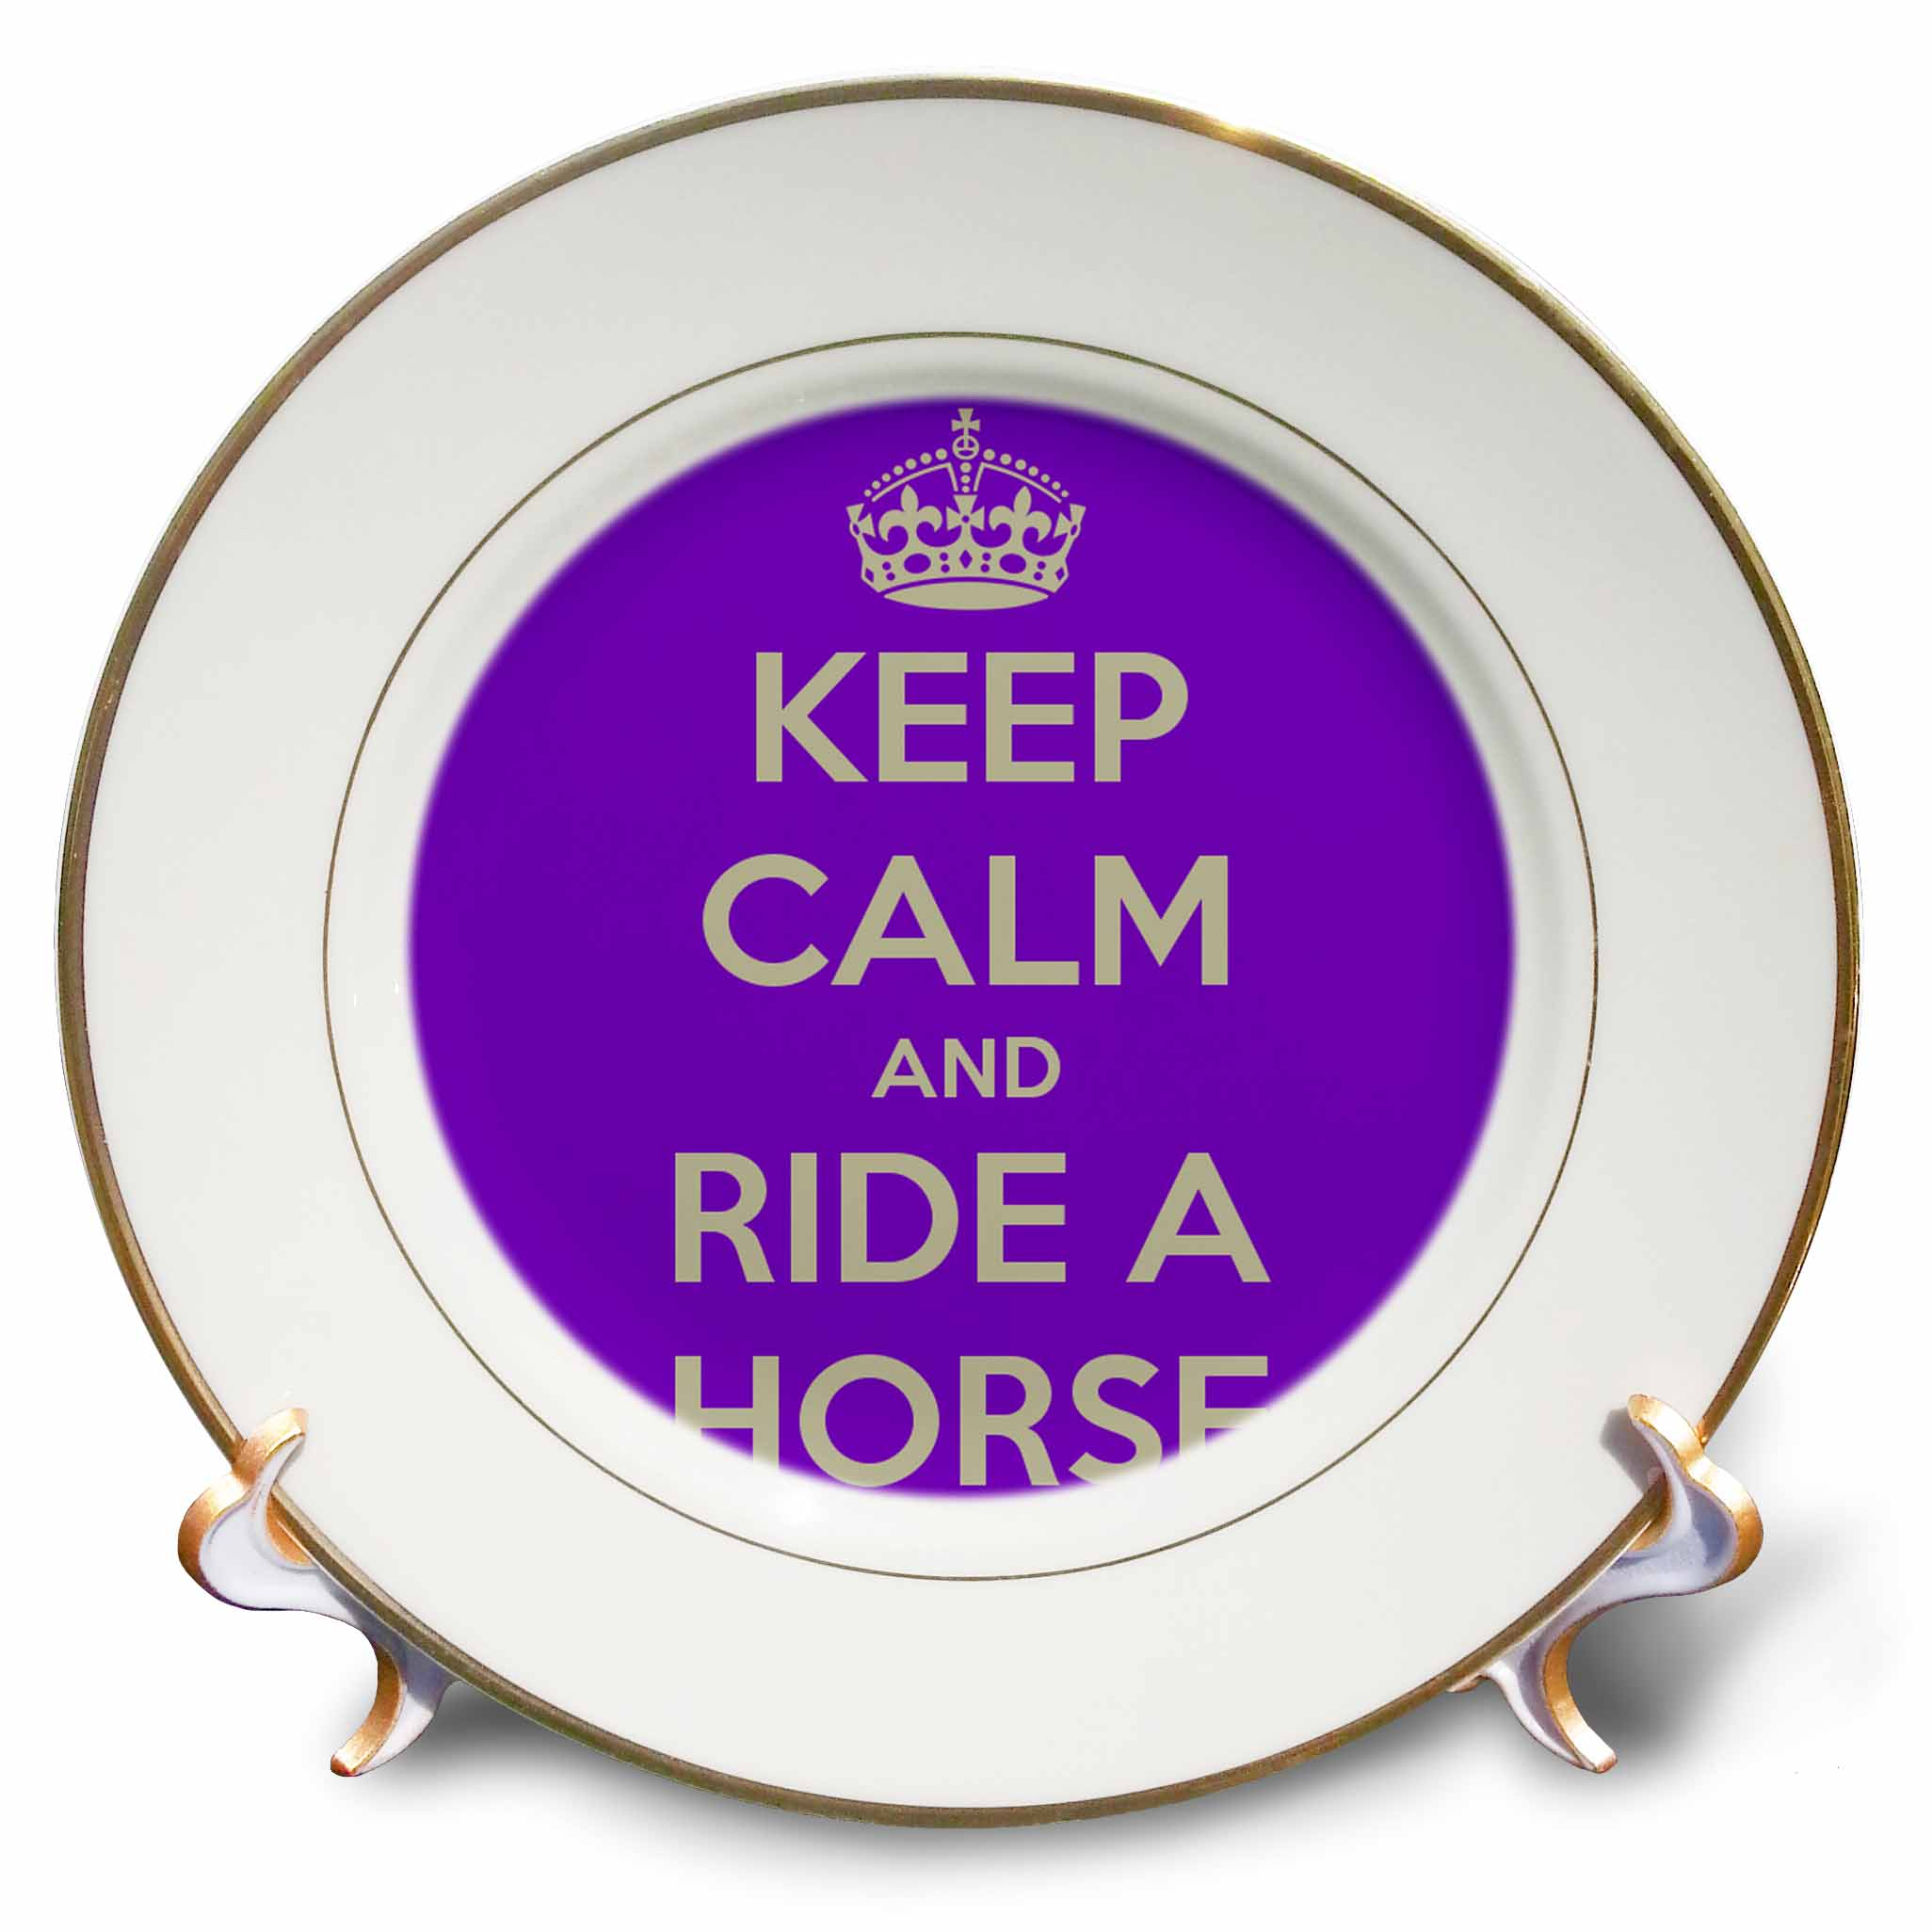 3dRose Keep calm and ride a horse, Purple and White, Porcelain Plate, 8-inch